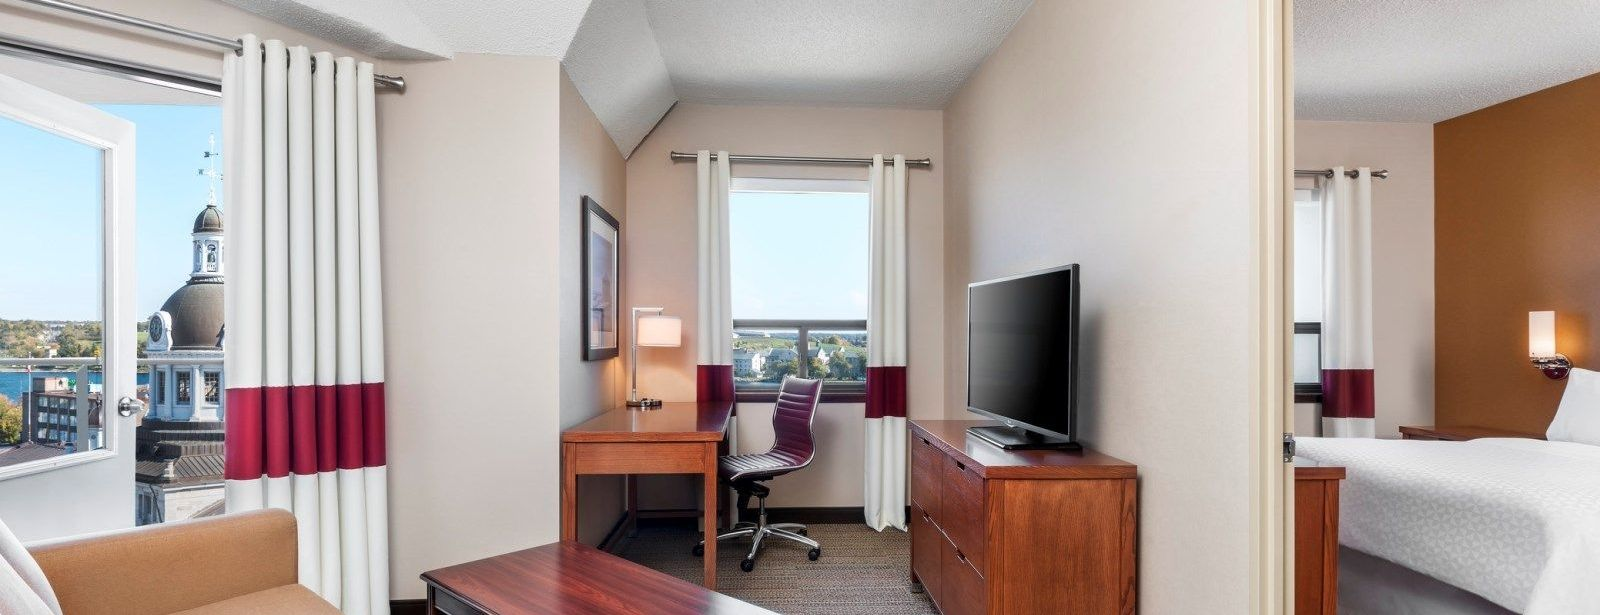 Kingston Accommodations - Suite